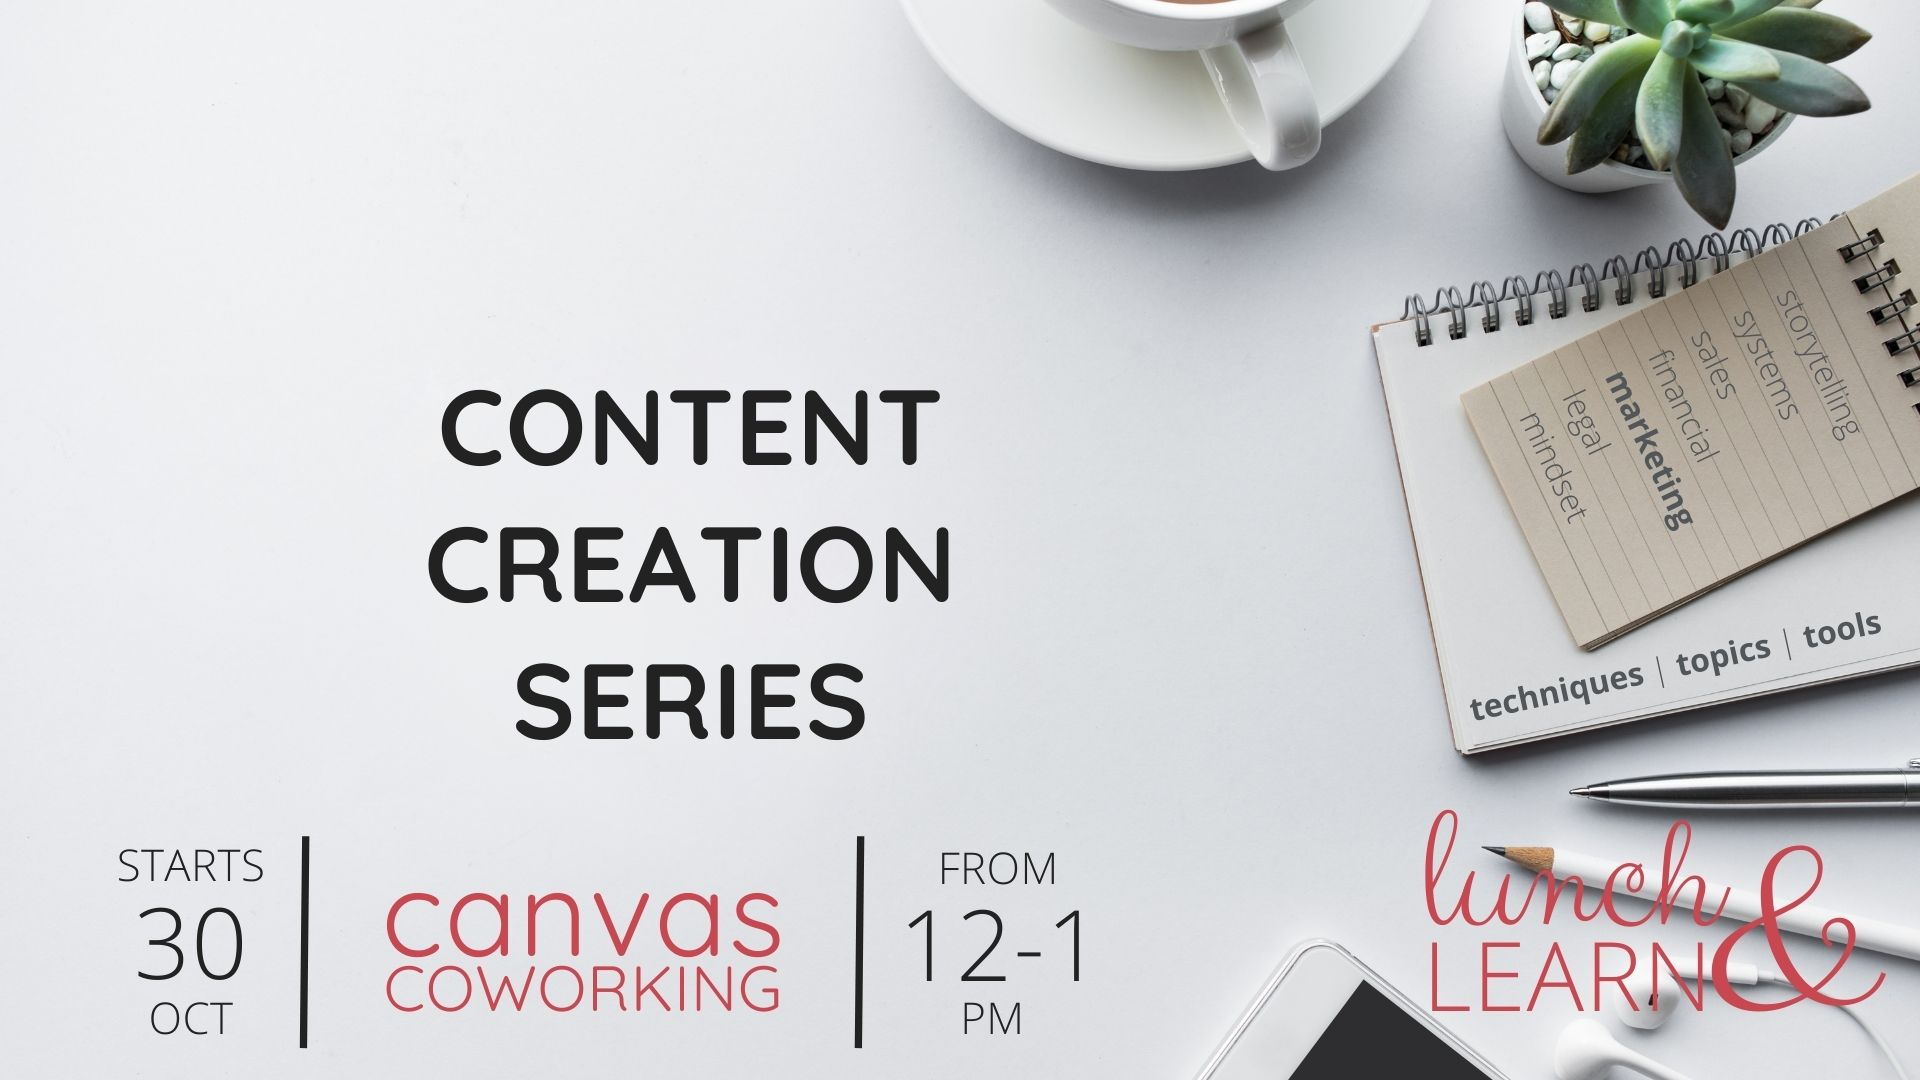 Lunch & Learn - Content Creation Series - Canvas Coworking - 30 Octoer to 18 December 2020